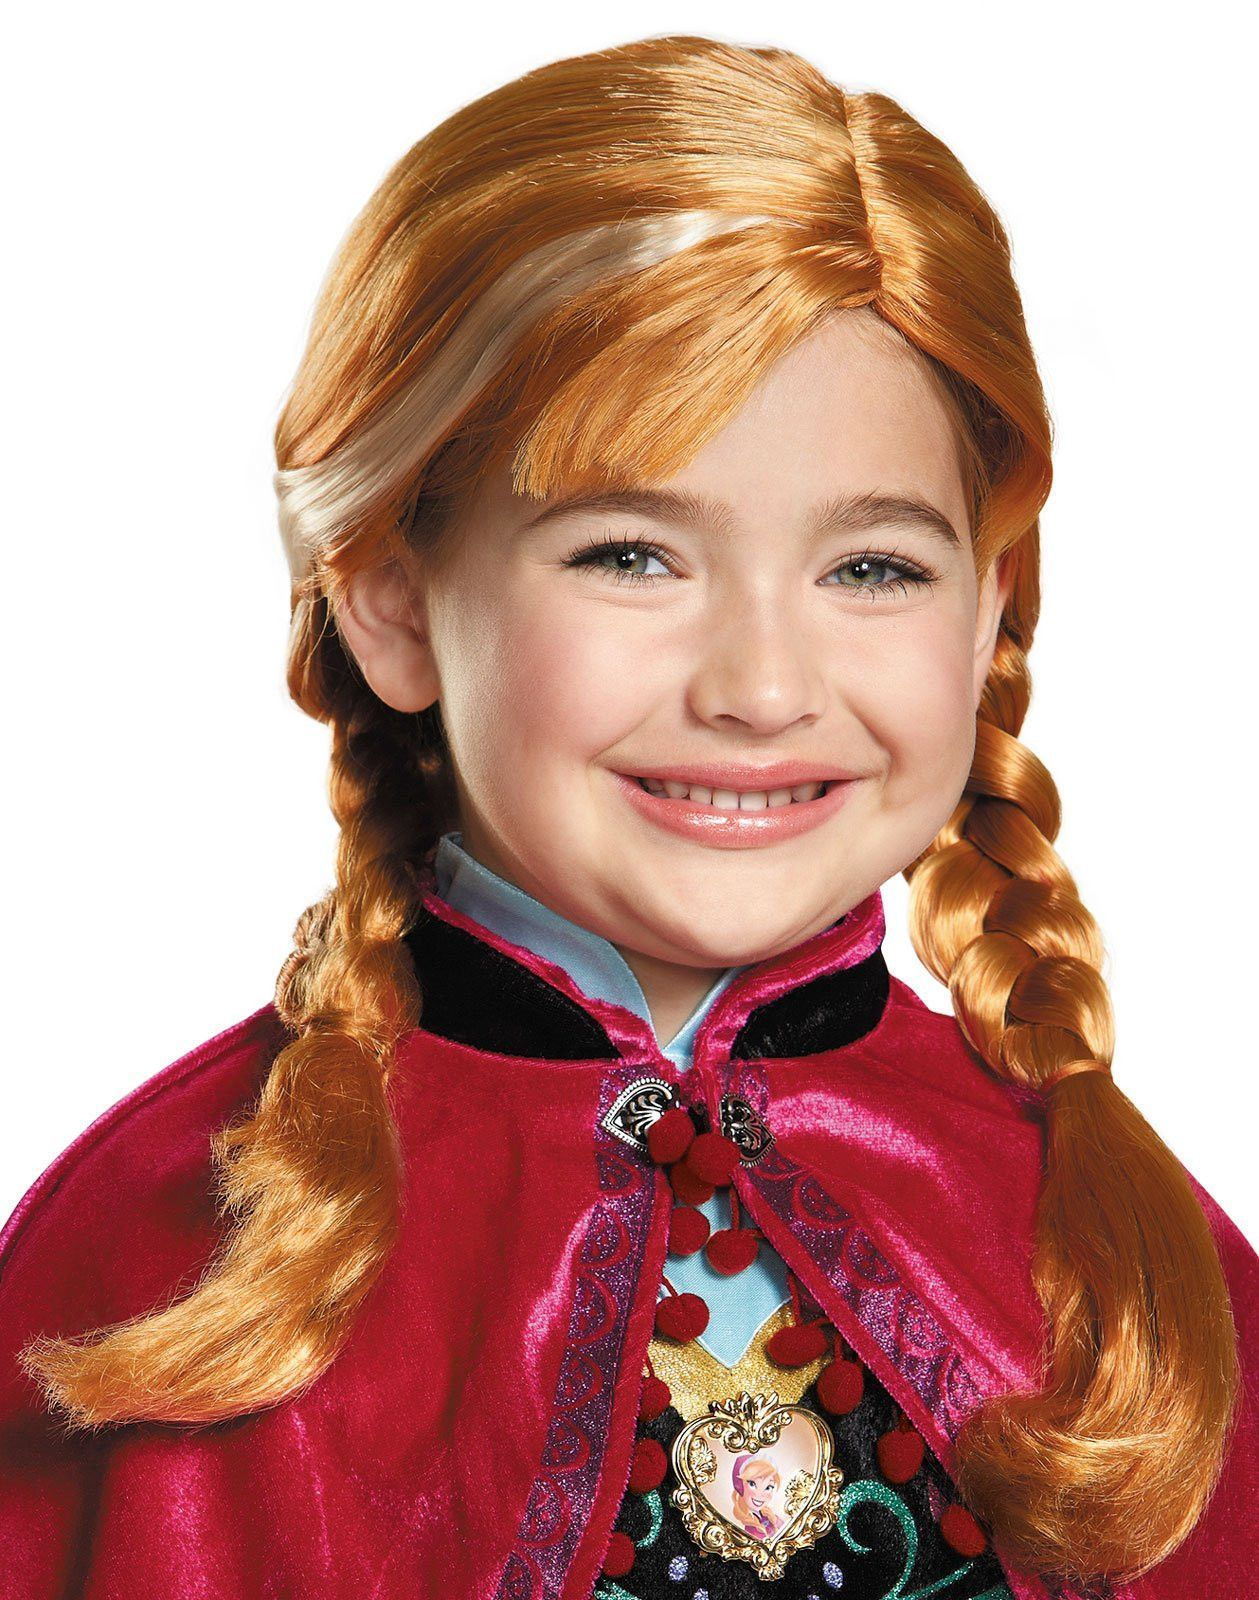 Frozen Anna Child Wig  Products  Pinterest  Wig and Products